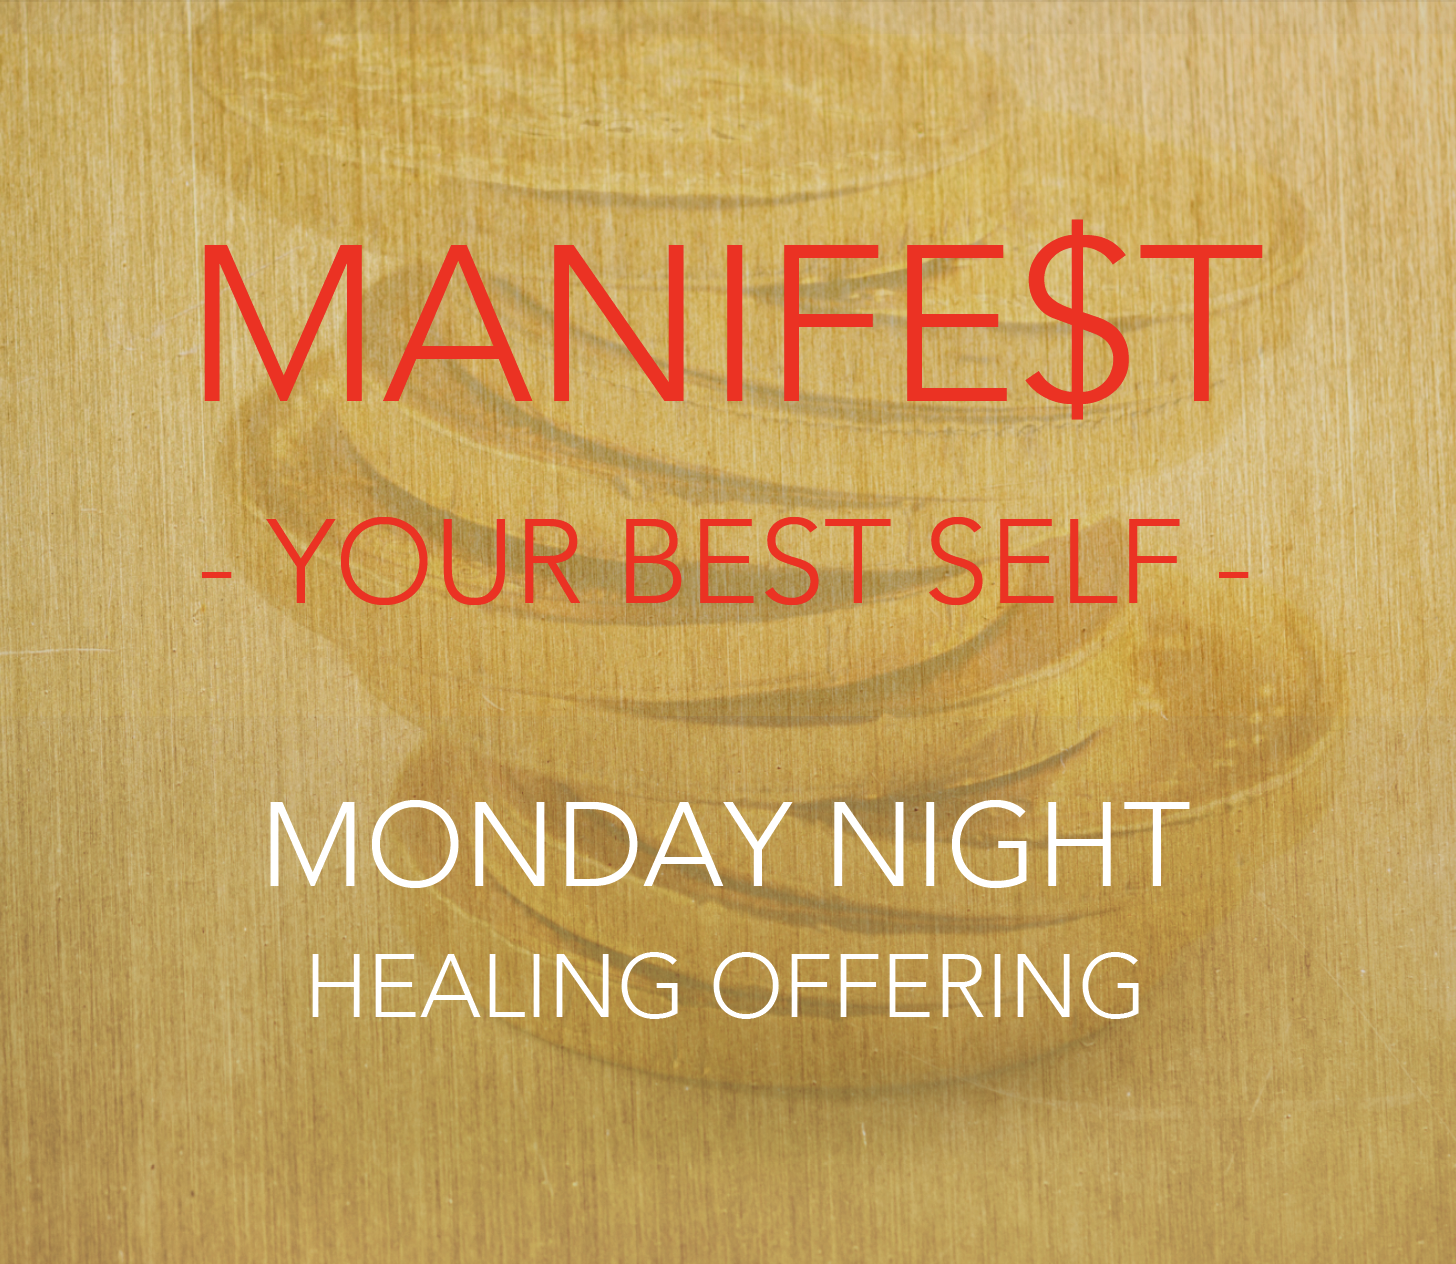 Mansifest Your Best Self - Healing Offering.png